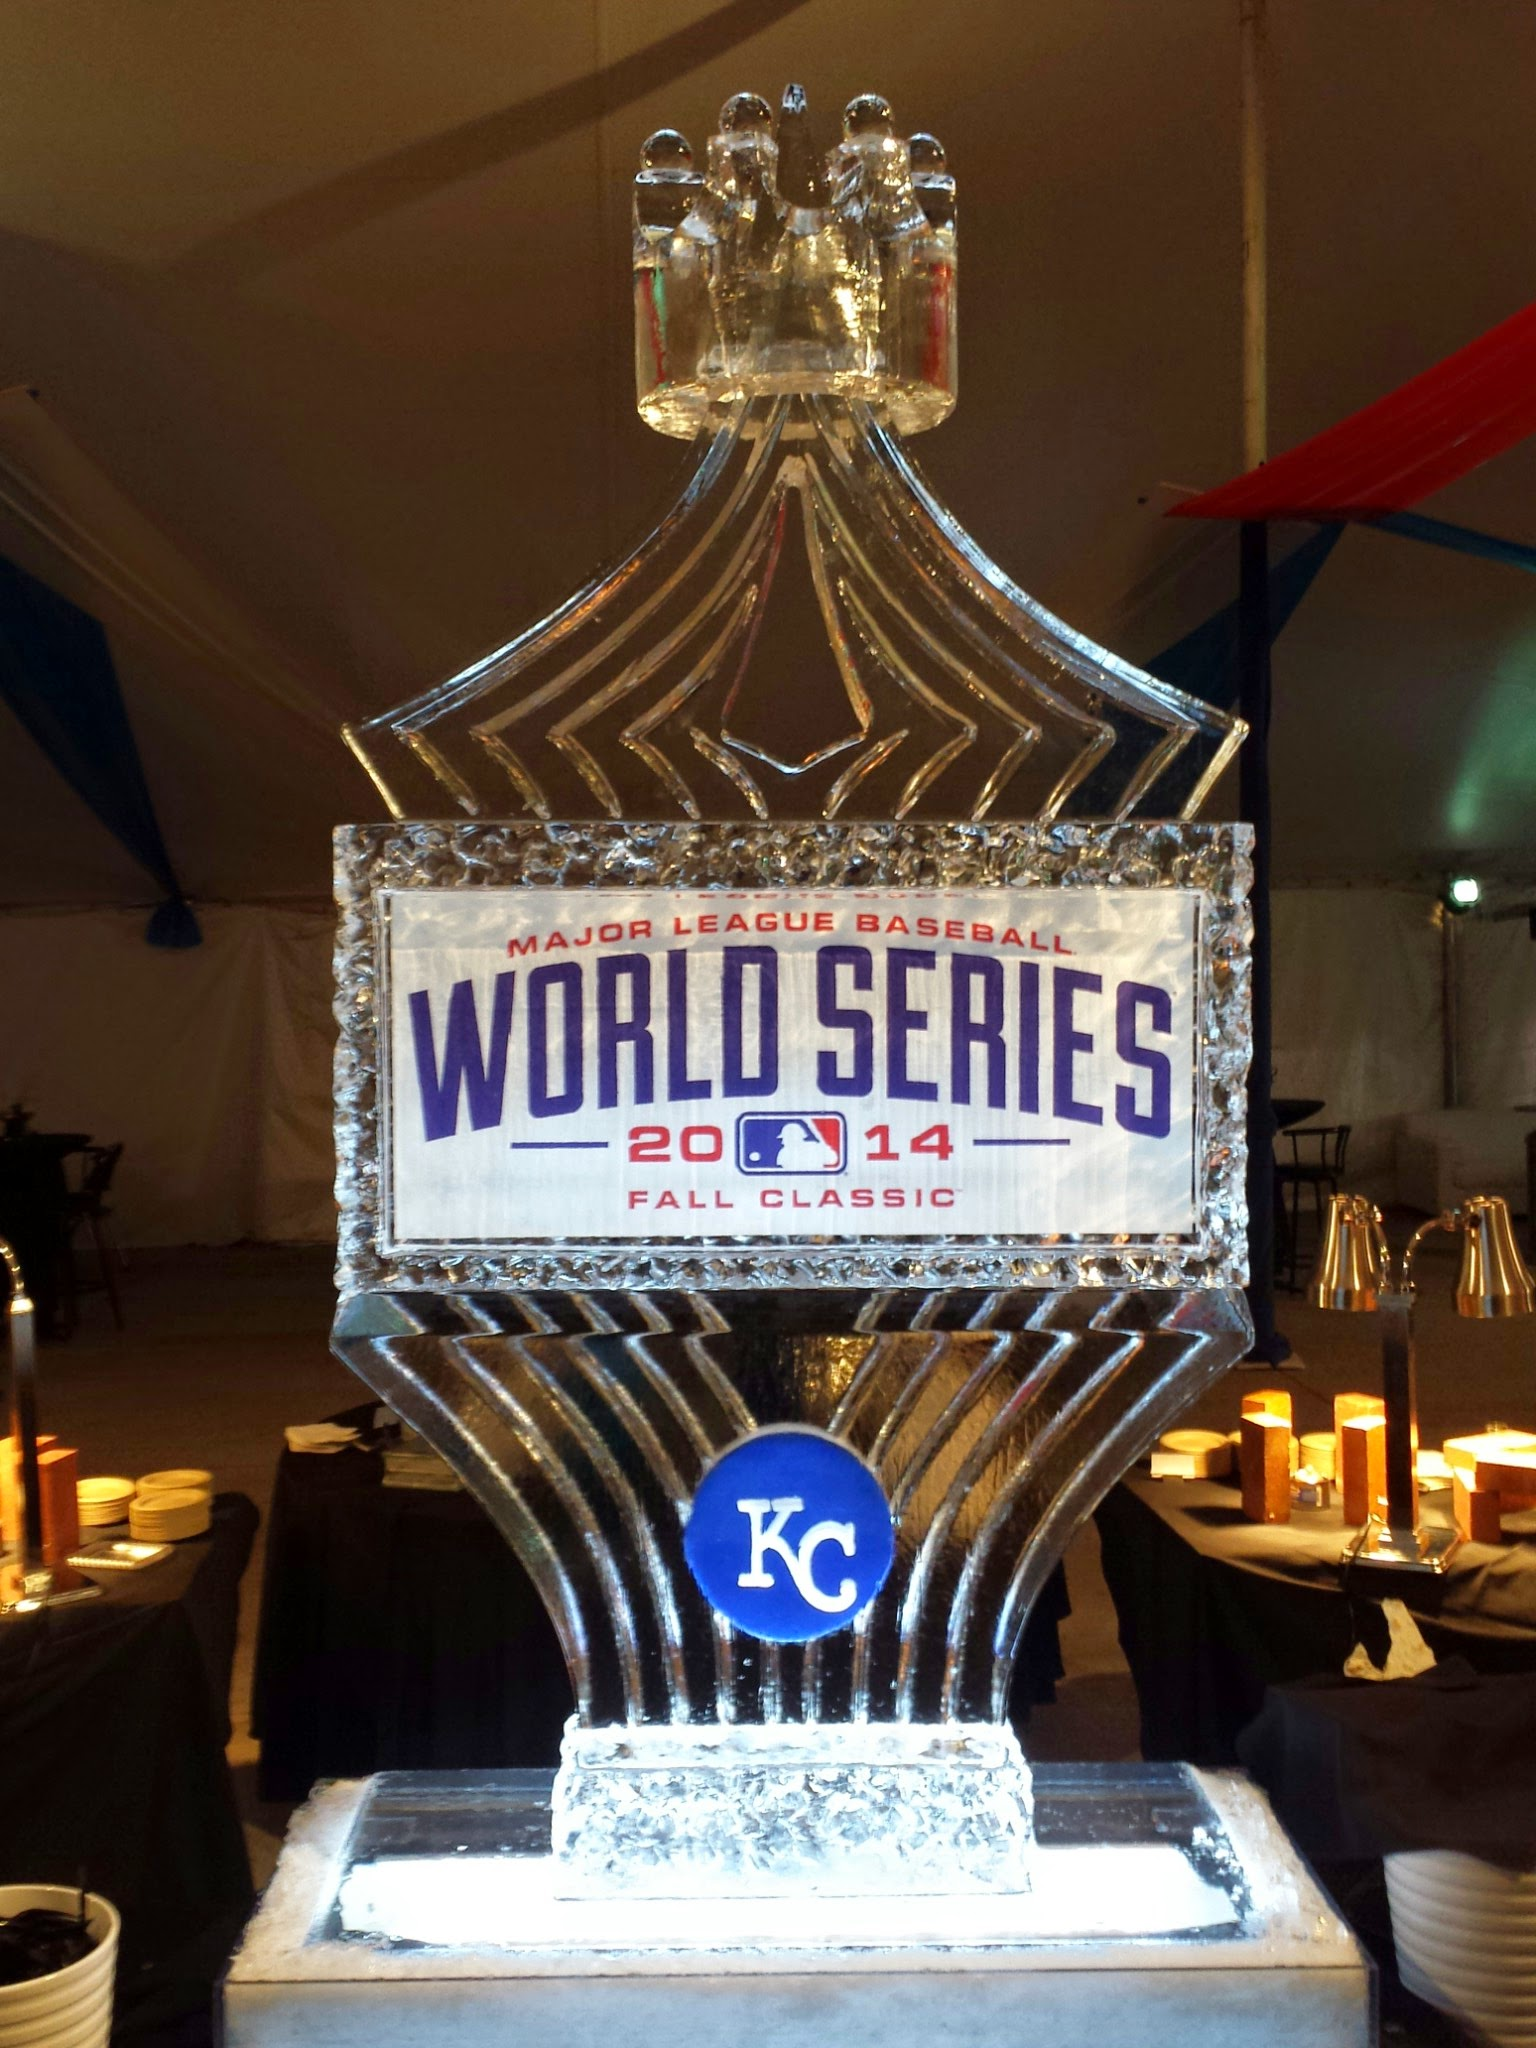 Ice Carvings for the Royals AL Playoffs and 2014 World Series!